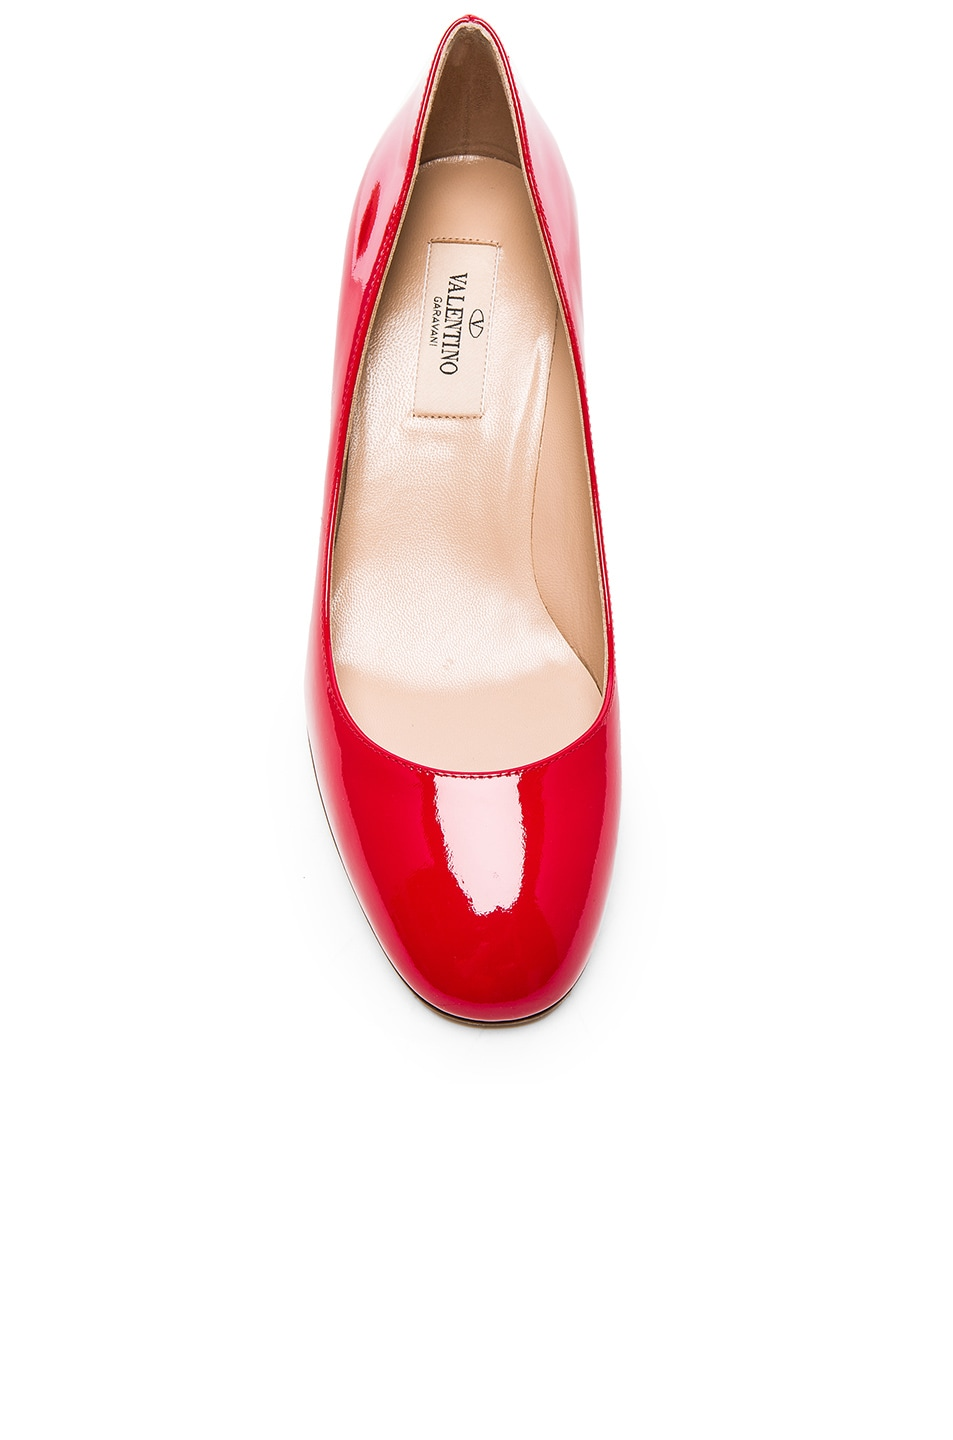 Image 4 of Valentino Patent Leather Tan-Go Pumps in Red